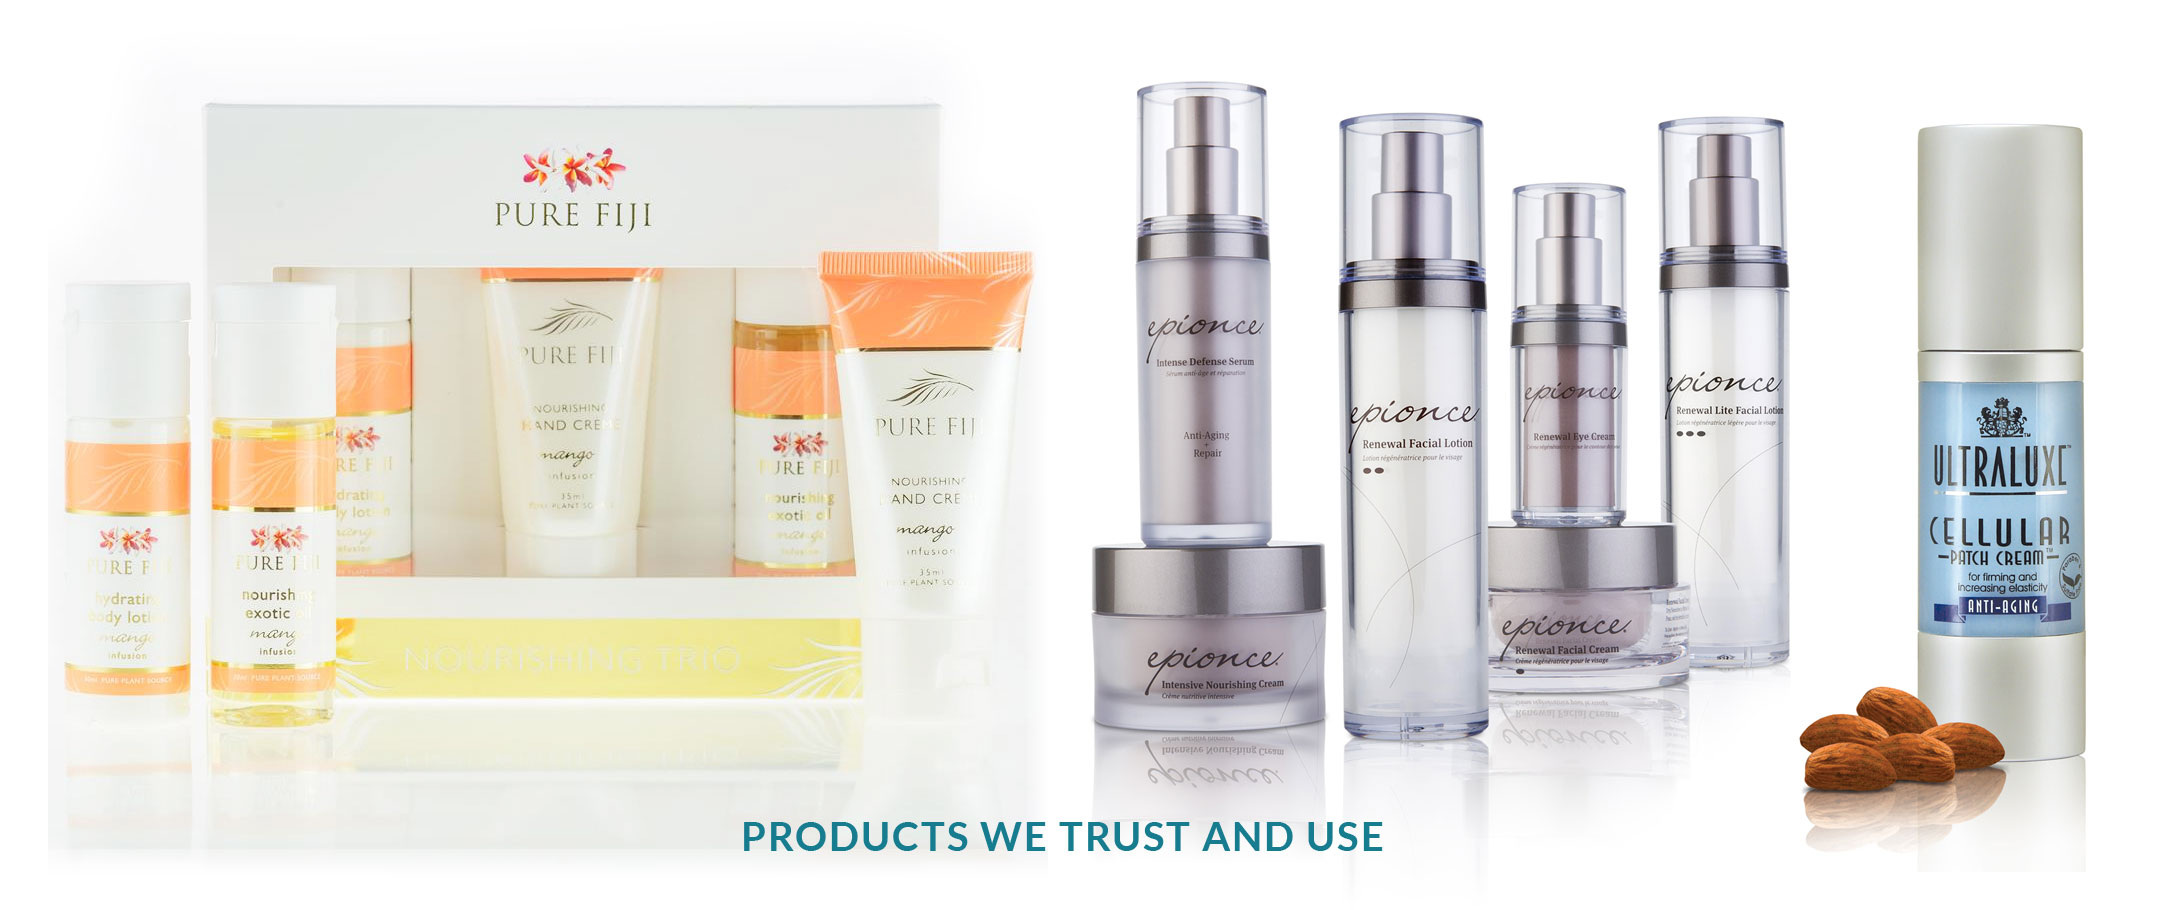 Product lines We Trust